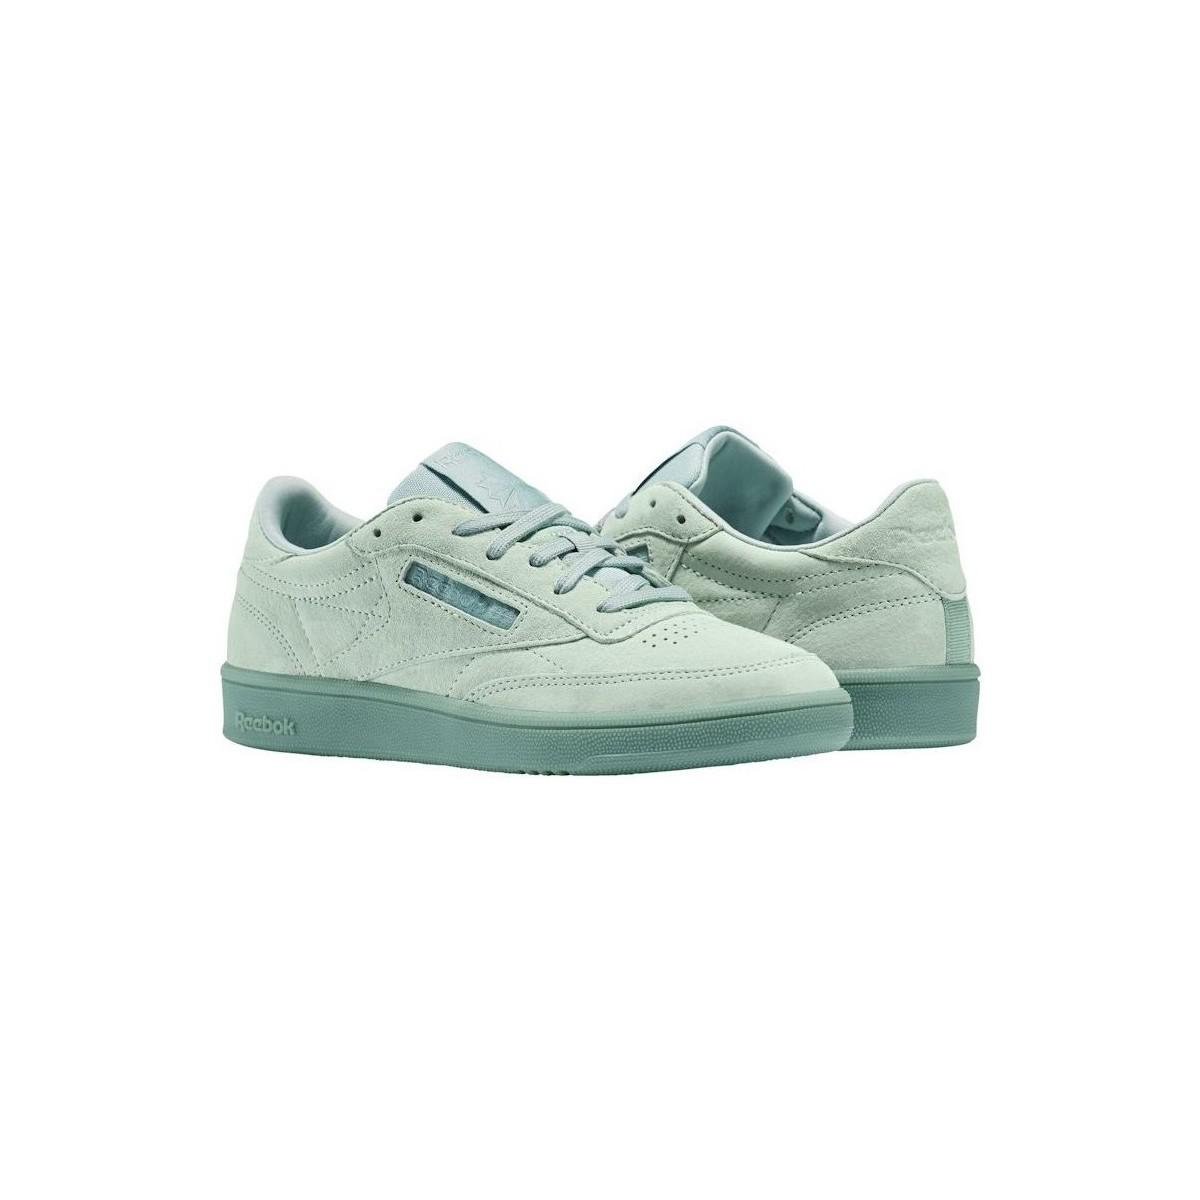 f73dcd28d6a1 Reebok - Green Club C 85 Lace Women s Shoes (trainers) In Multicolour -  Lyst. View fullscreen